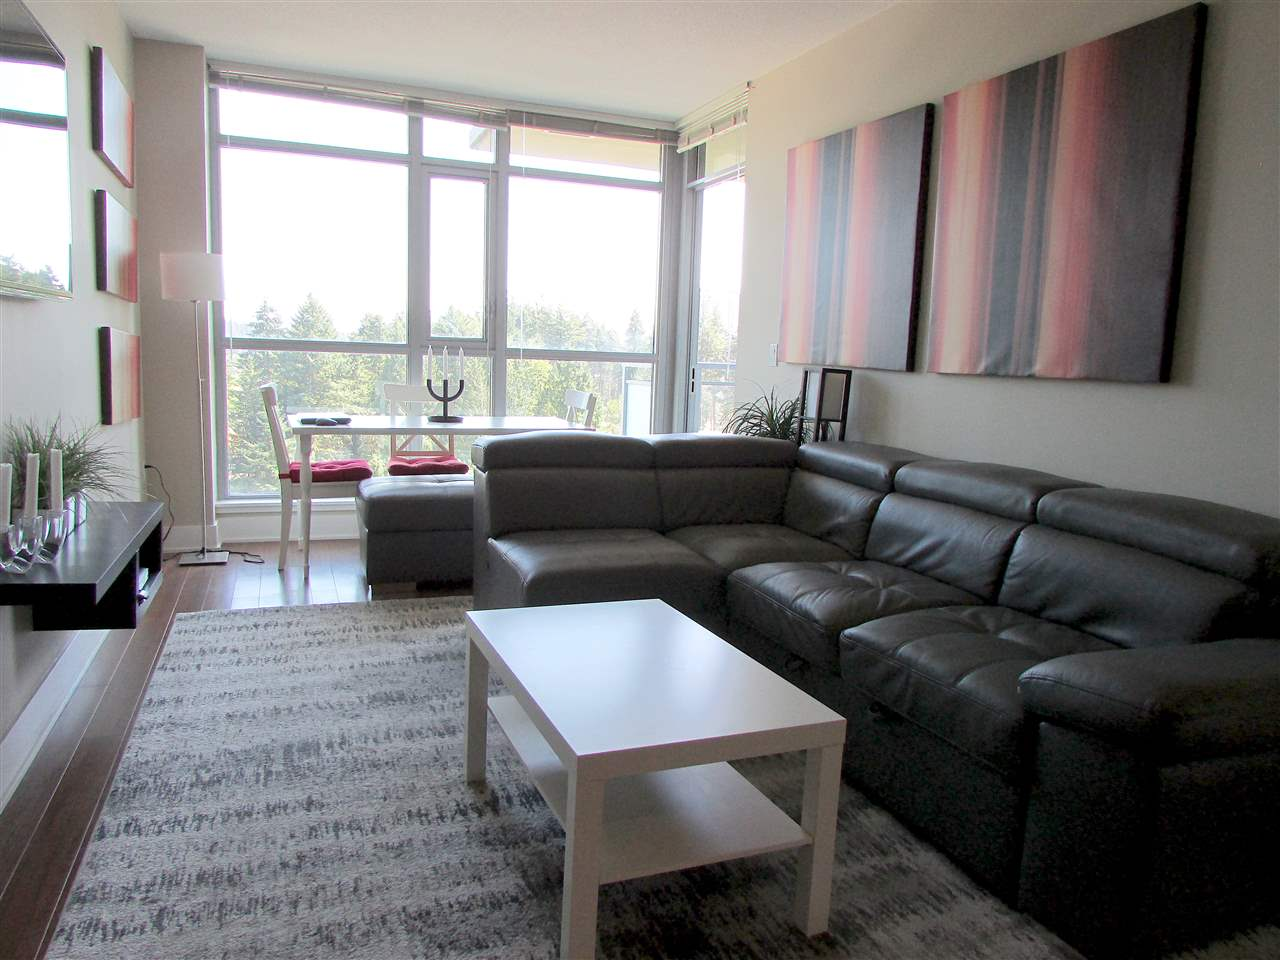 "Photo 2: 1506 3008 GLEN Drive in Coquitlam: North Coquitlam Condo for sale in ""M2"" : MLS® # R2193359"